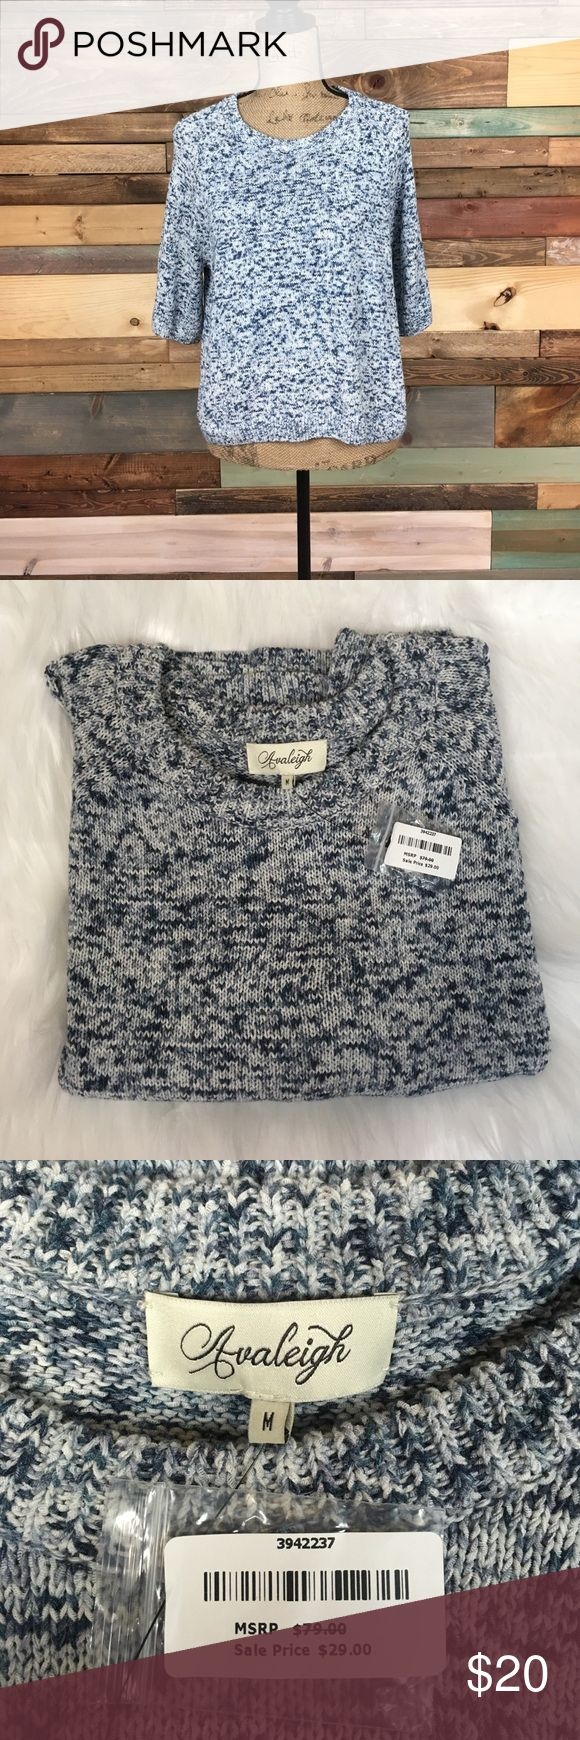 "NWT Sky Blue Avaleigh Knit Sweater M NWT Sky Blue Avaleigh Knit Sweater M // Bust: 21"" Length: 20.5"" // Make an offer for best deals! avaleigh Sweaters"